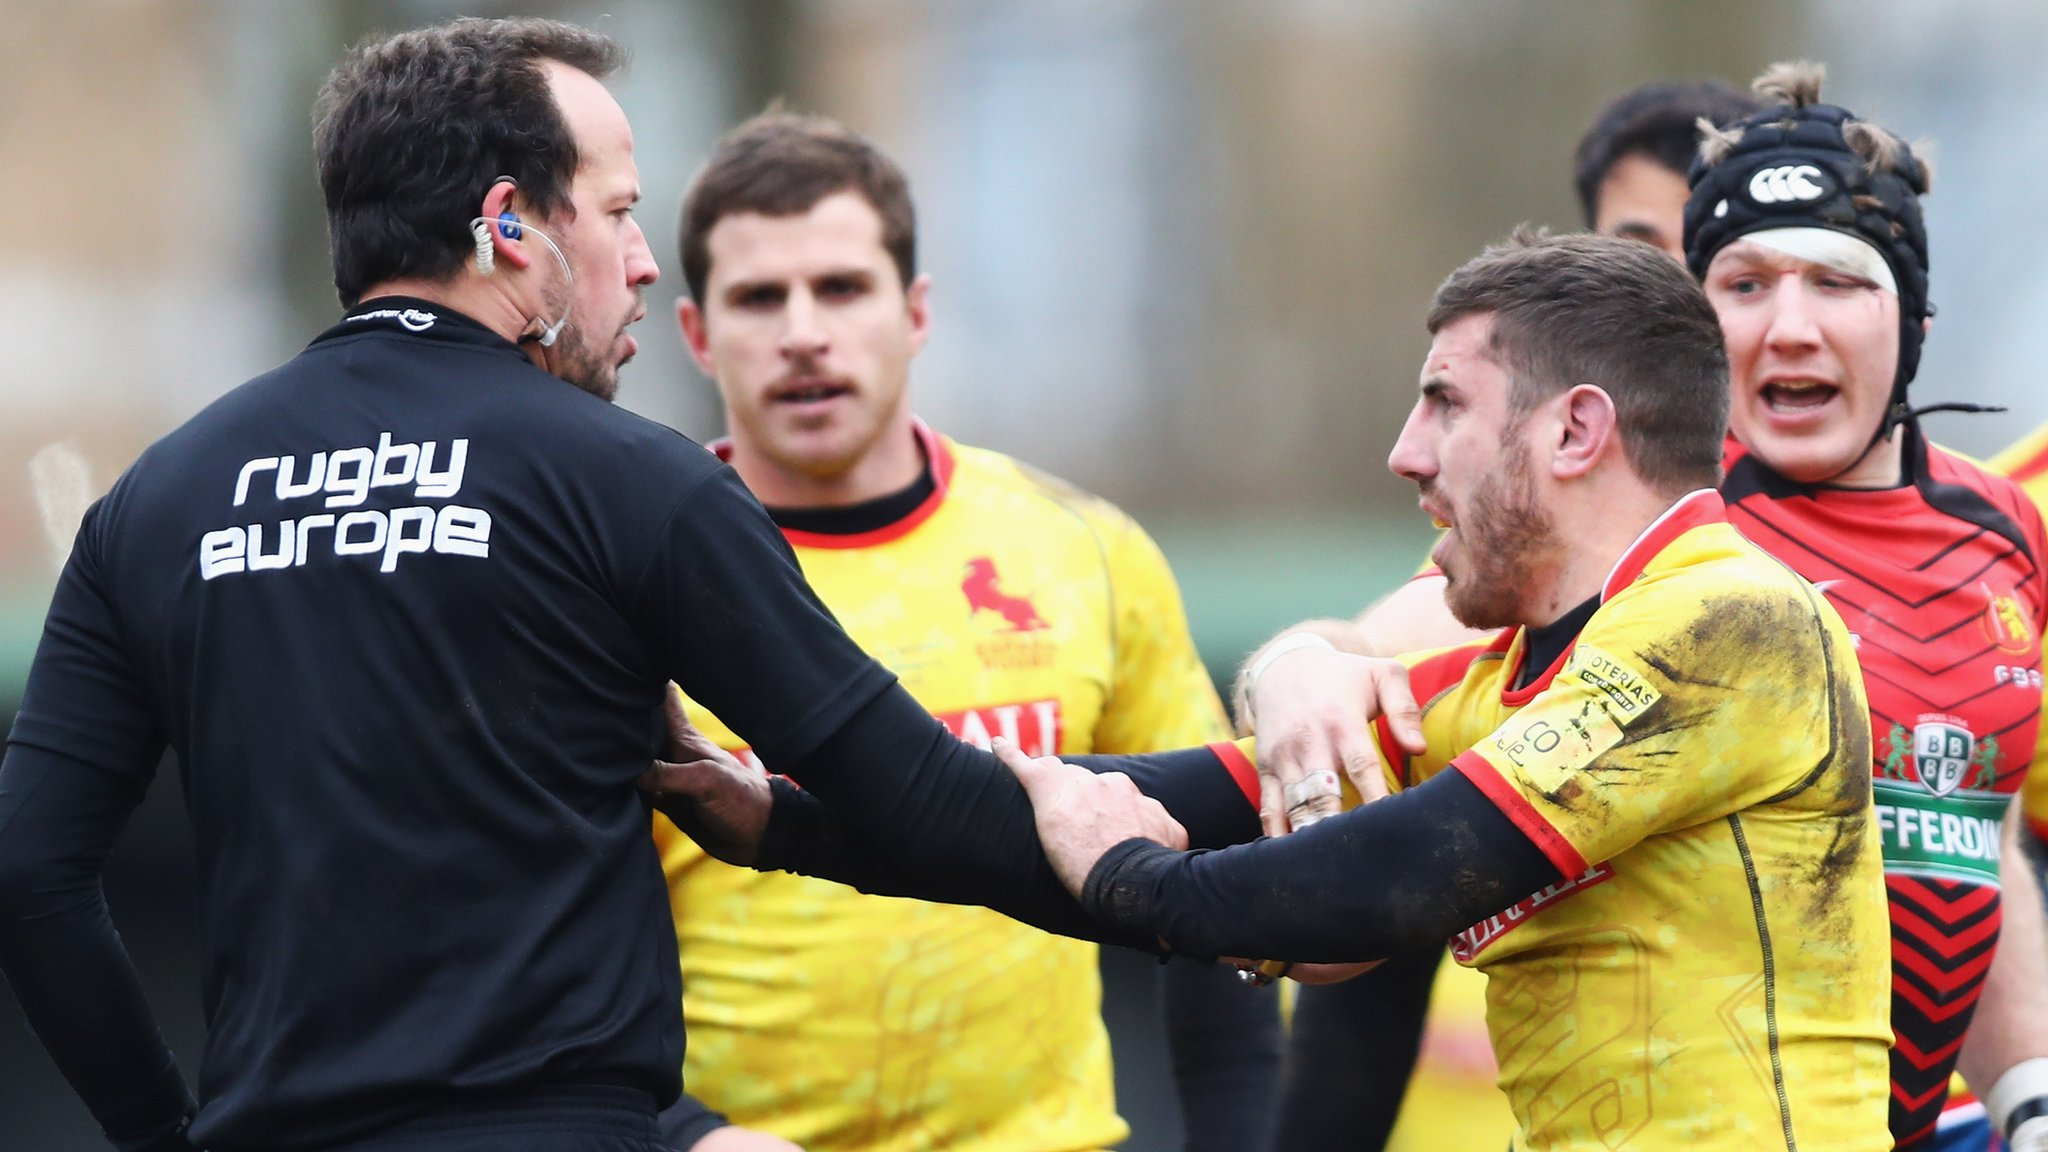 World Rugby to look at Spain's World Cup qualifying defeat by Belgium